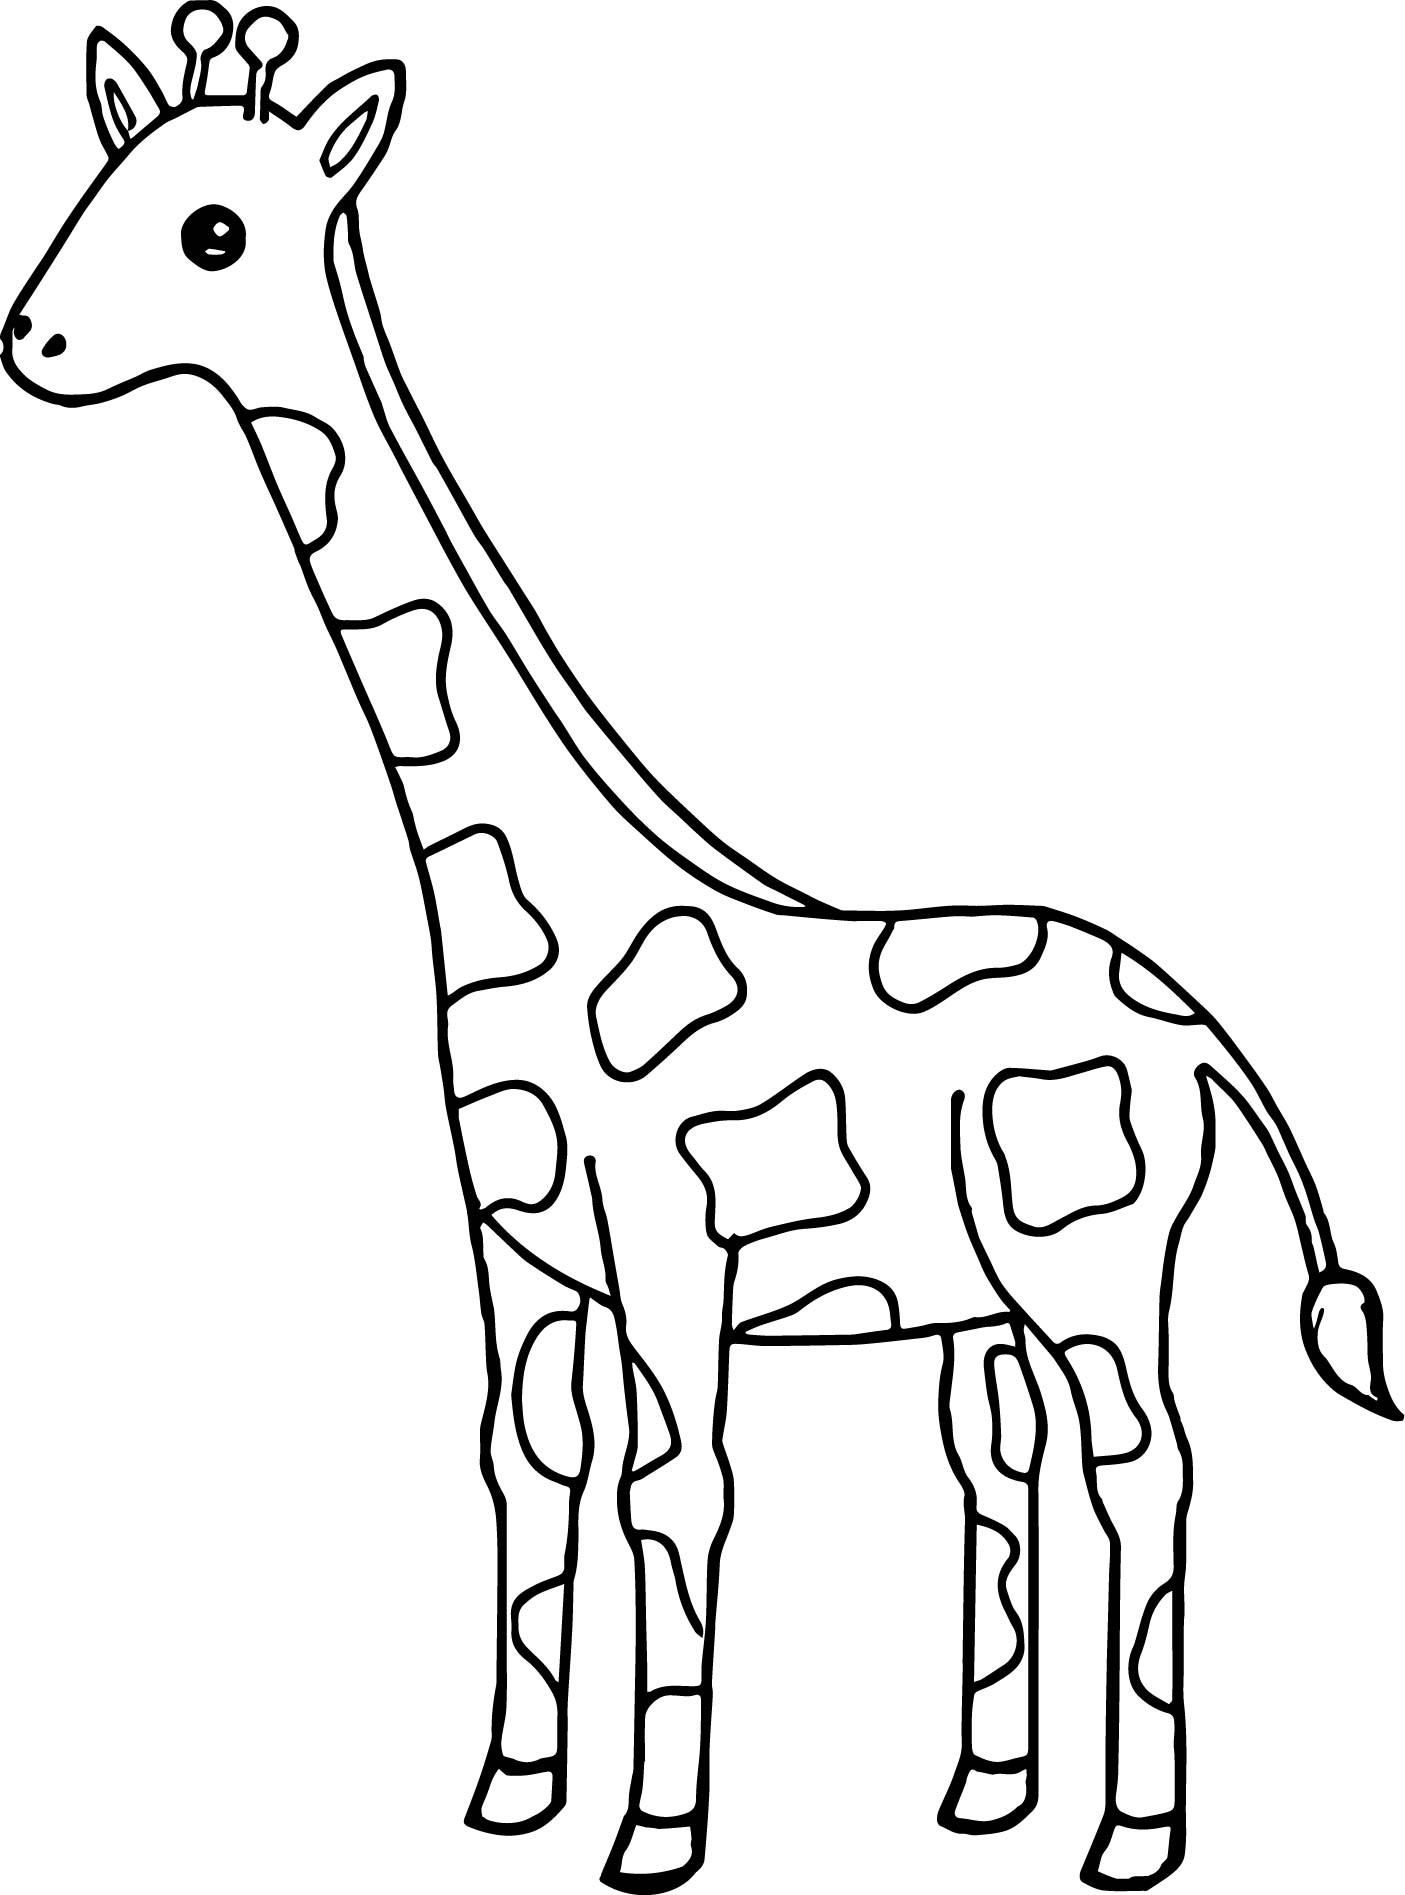 Giraffe Coloring Pages For Kids  coloring pages of giraffes